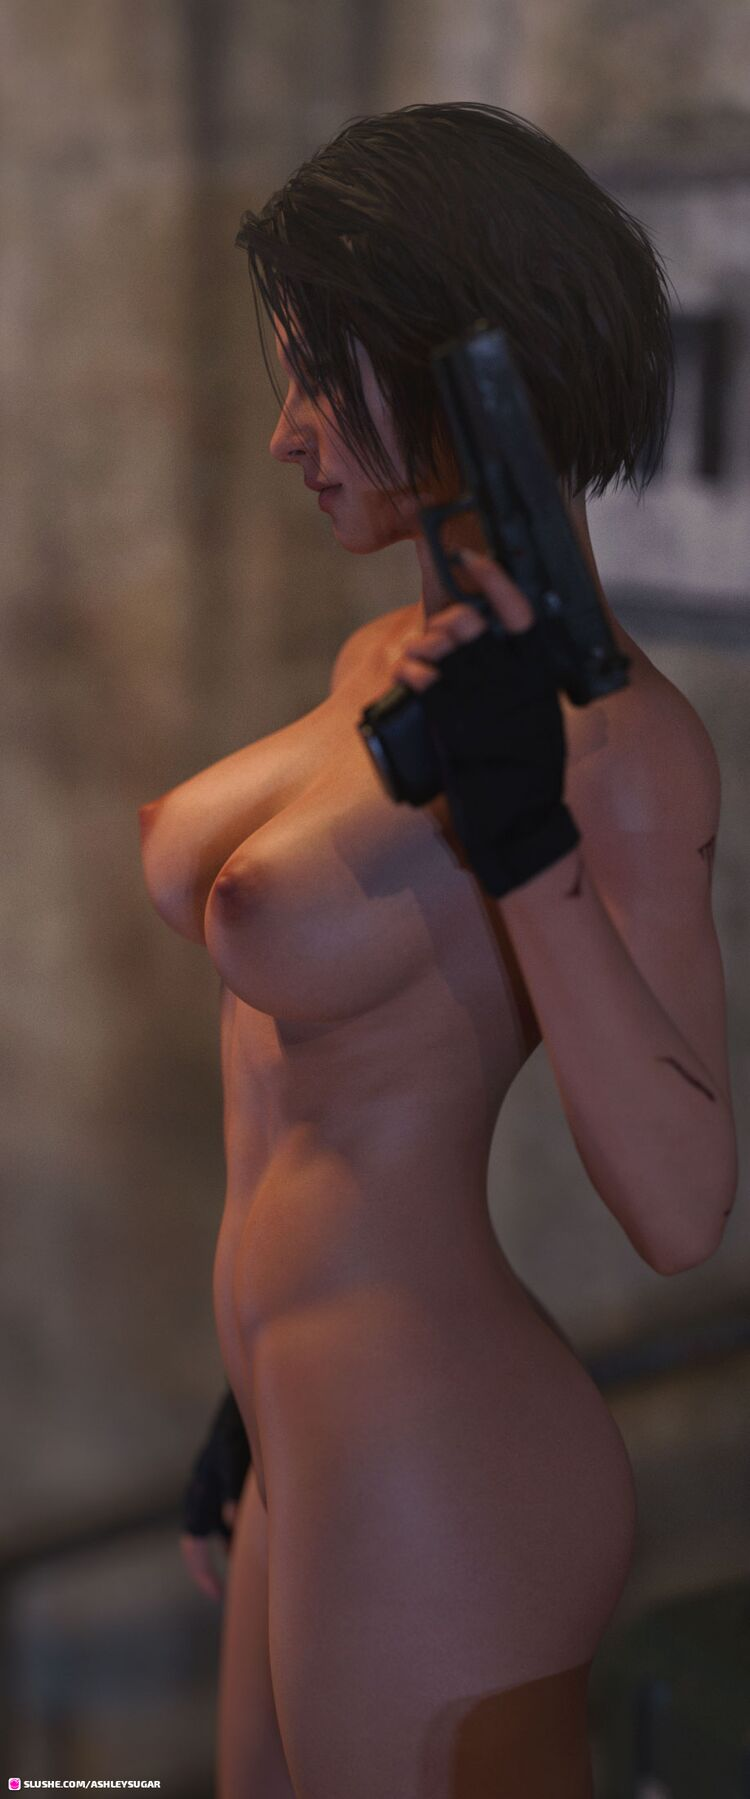 Fight scenes from upcoming story with Jill Valentine.